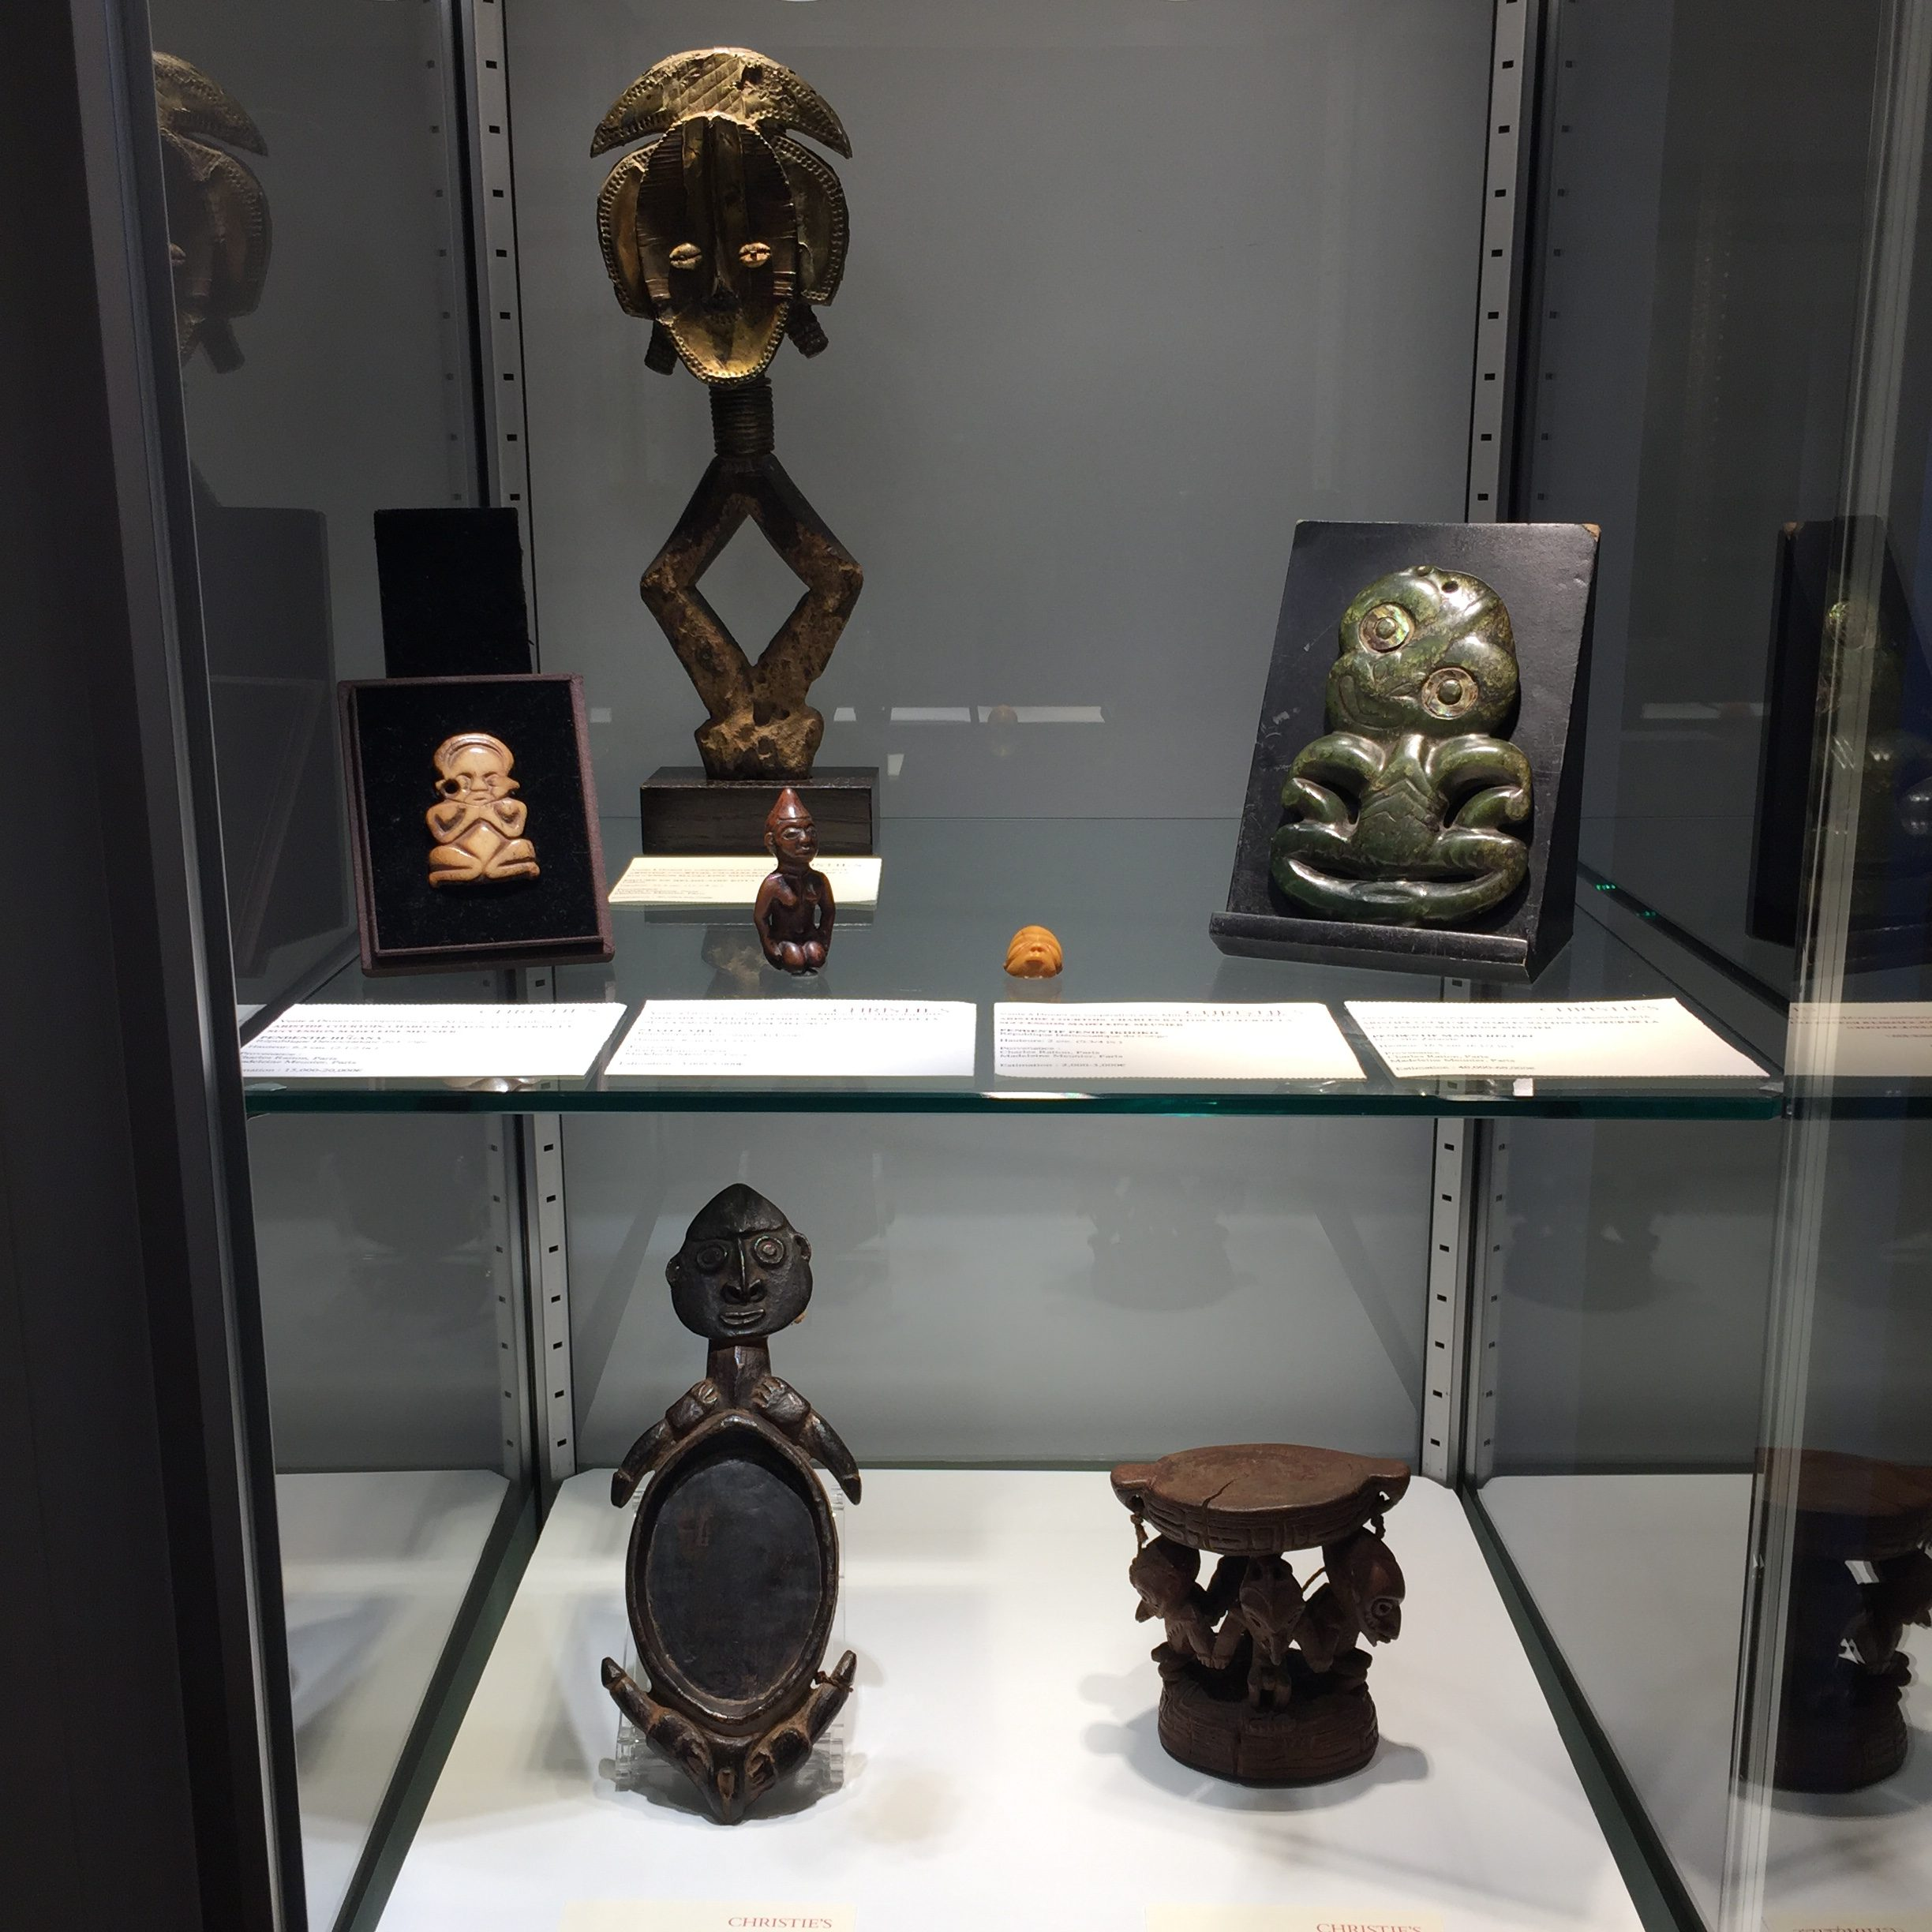 collection-madeleine-meunier-christies-paris-charles-ratton-sepik-kota-pende-tiki-hungana